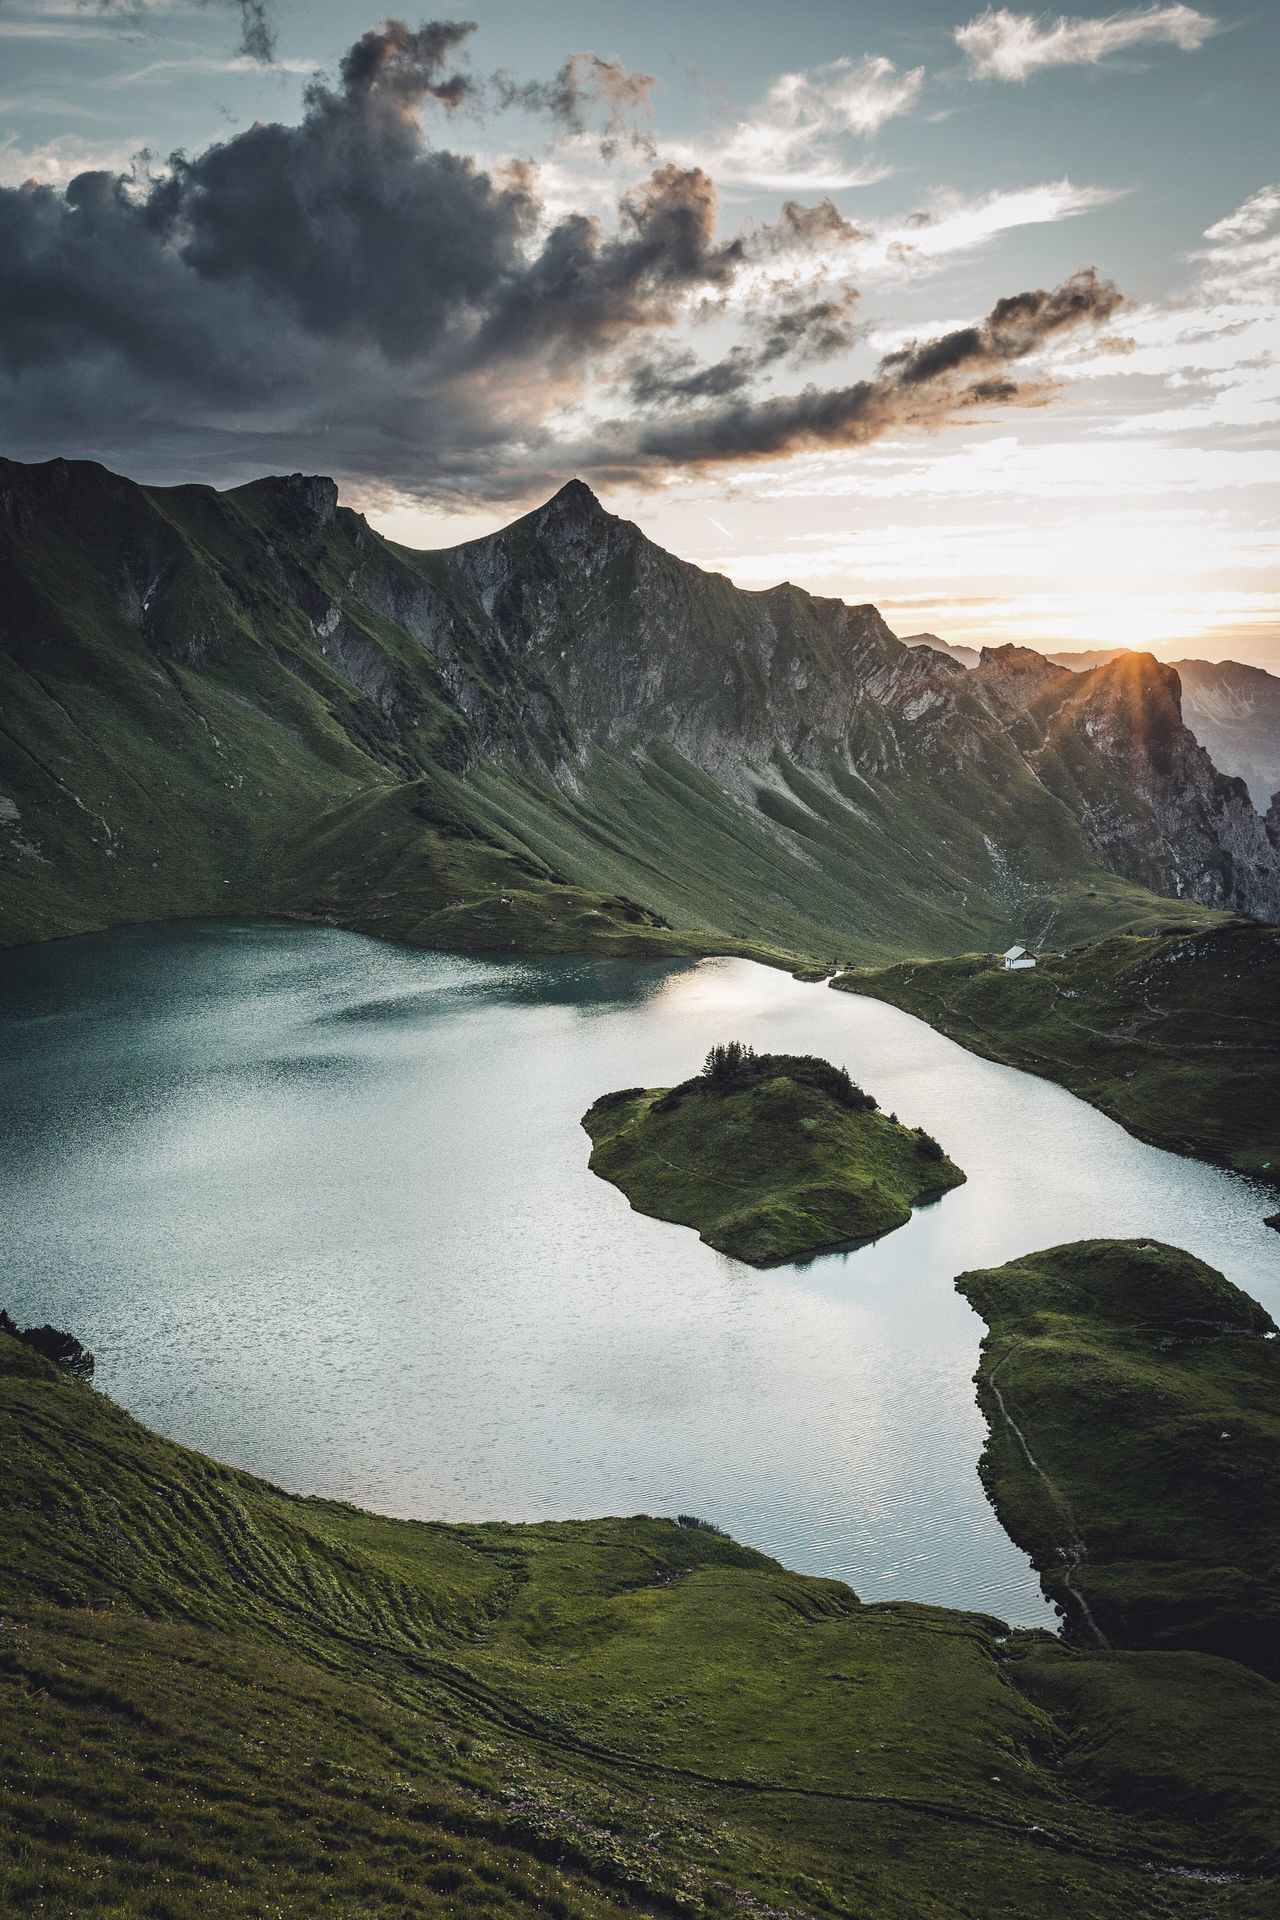 Every lake is better with an island. Germany Landscape Scenics Travel Destinations Outdoors Beauty In Nature Water Sky Nature Tranquil Scene Cloud - Sky No People Mountain Day